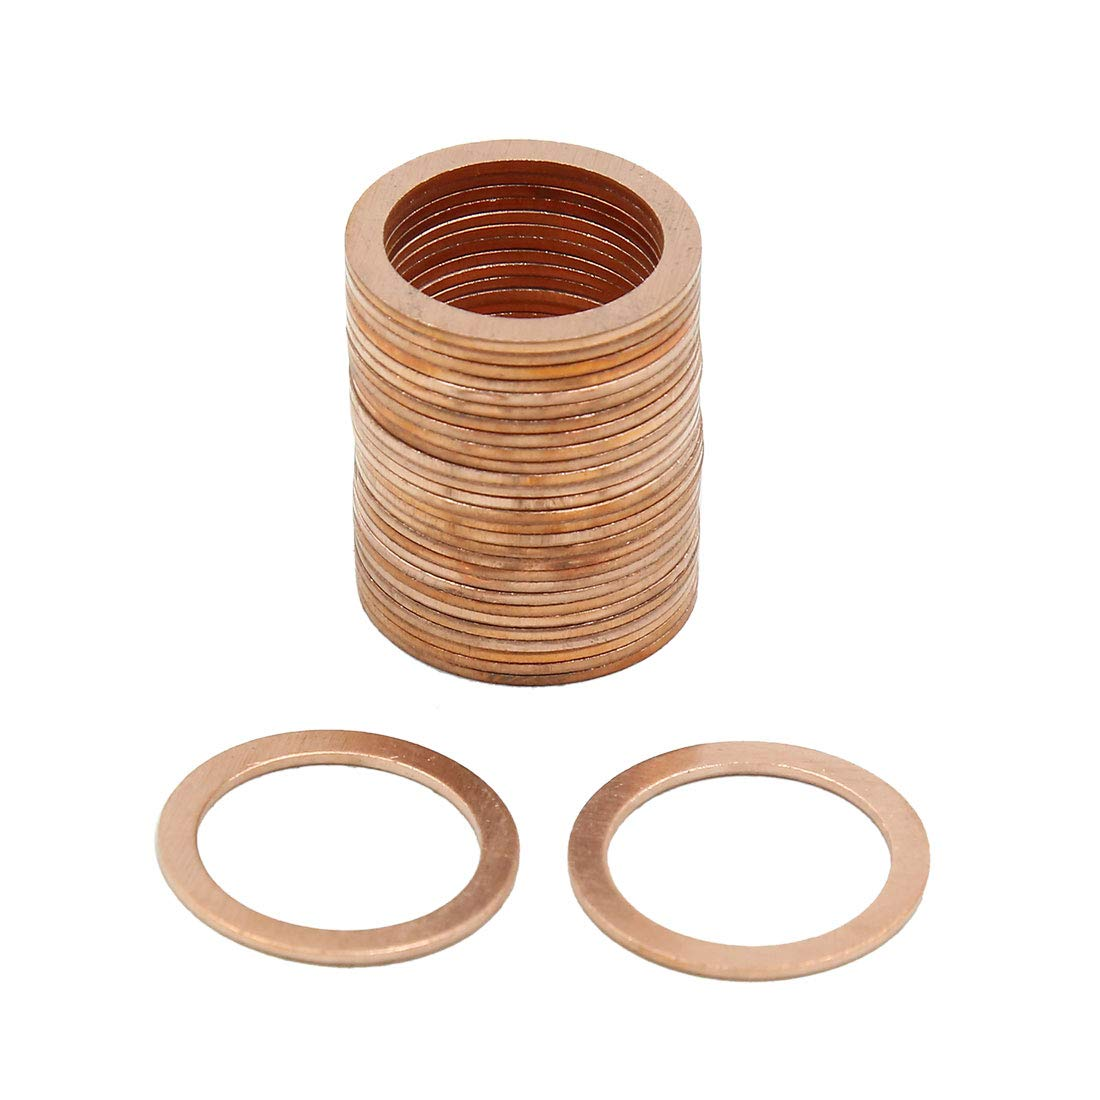 X AUTOHAUX 18mm Inner Dia Copper Crush Flat Washers Car Engine Sealing Gaskets Rings 30pcs